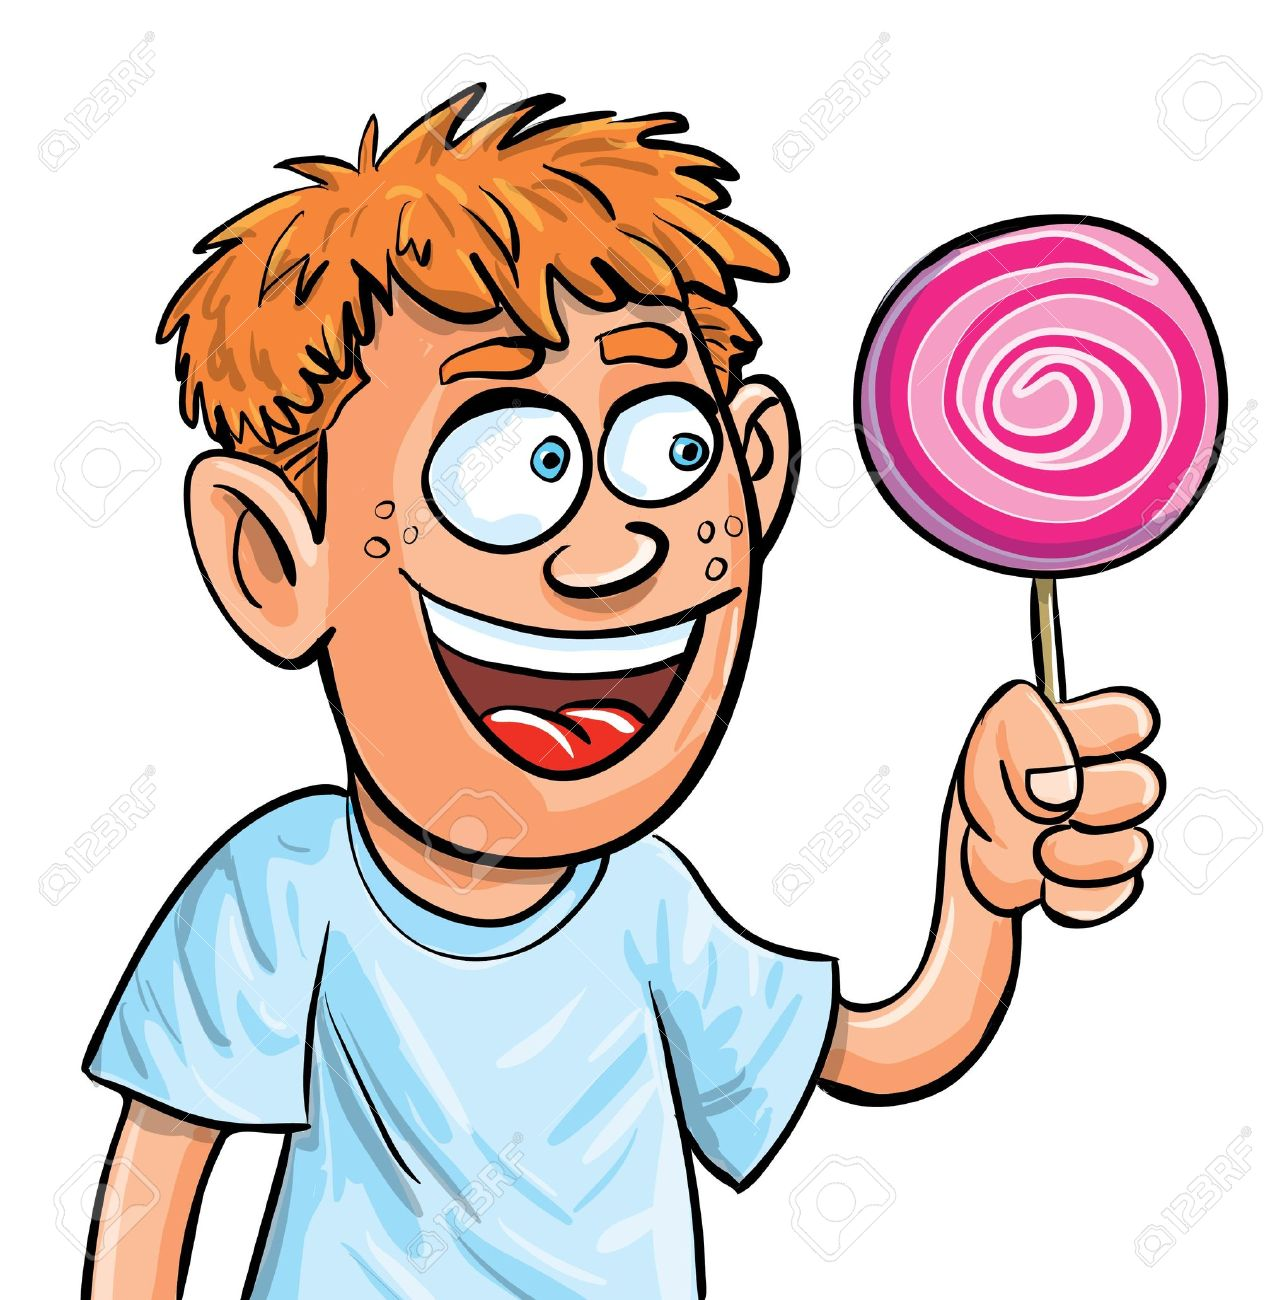 Cartoon Boy Eating Lollypop Isolated On White Royalty Free Cliparts - Cartoon-boy-images-free